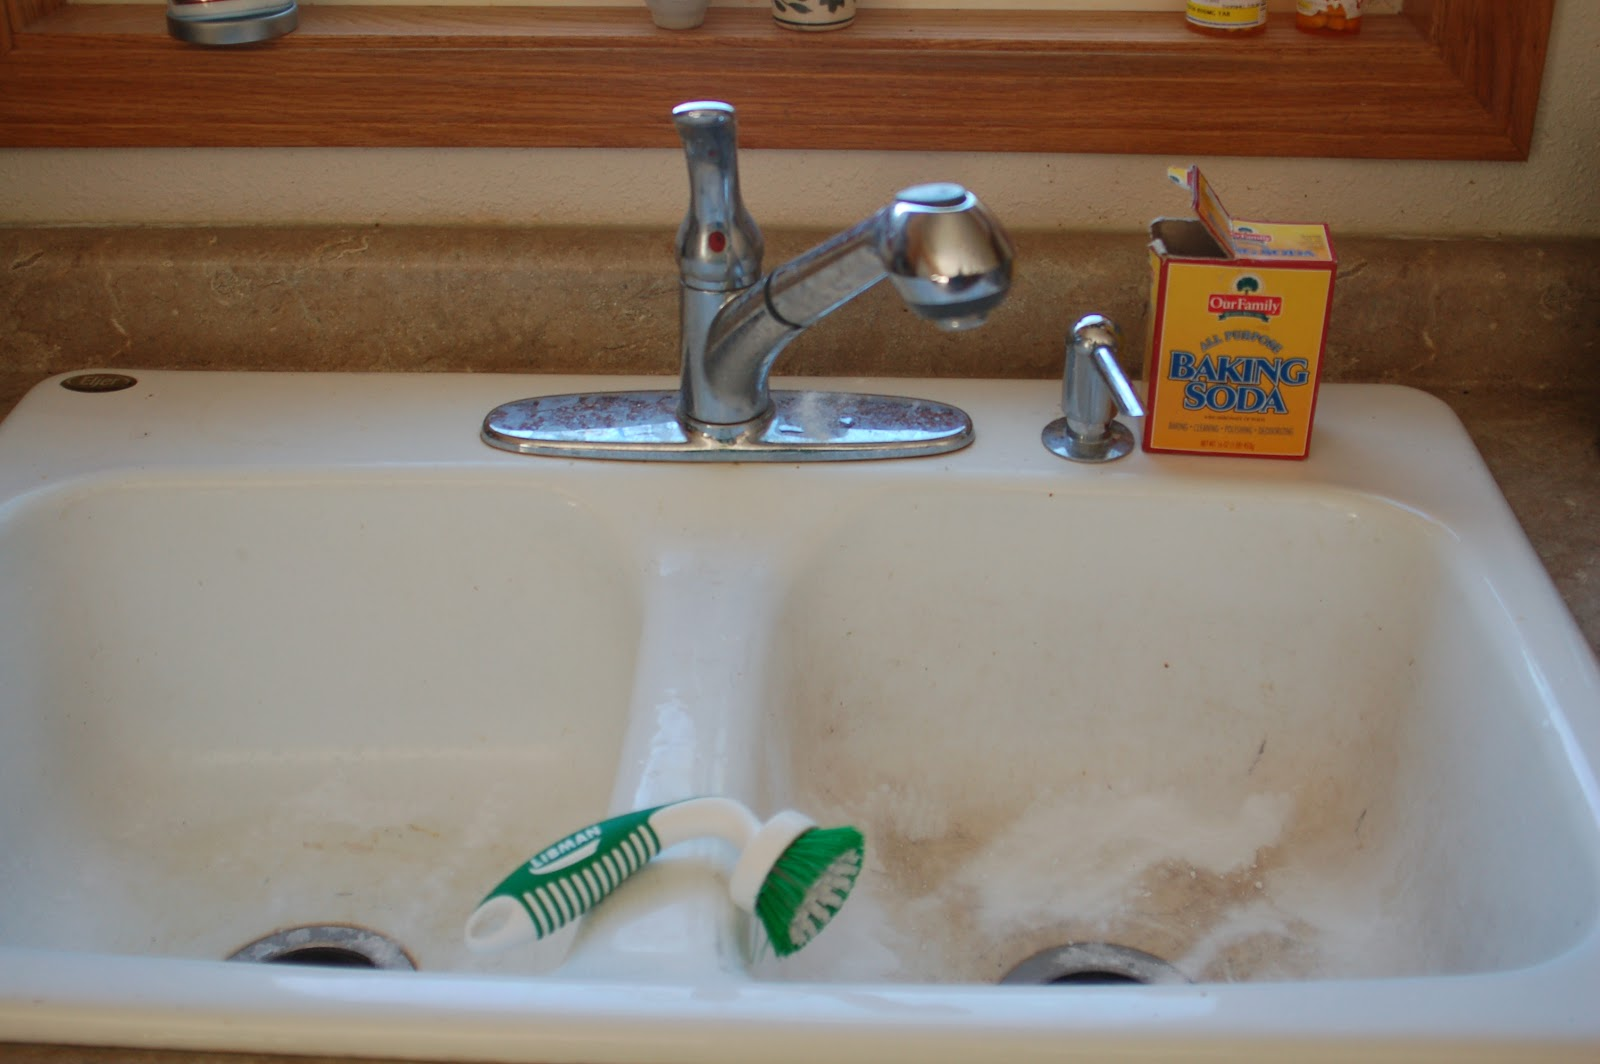 Kitchen Sink Refinishing Porcelain Inexpensive Countertops For Kitchens How To Clean Sinks Without Bleach Simplify